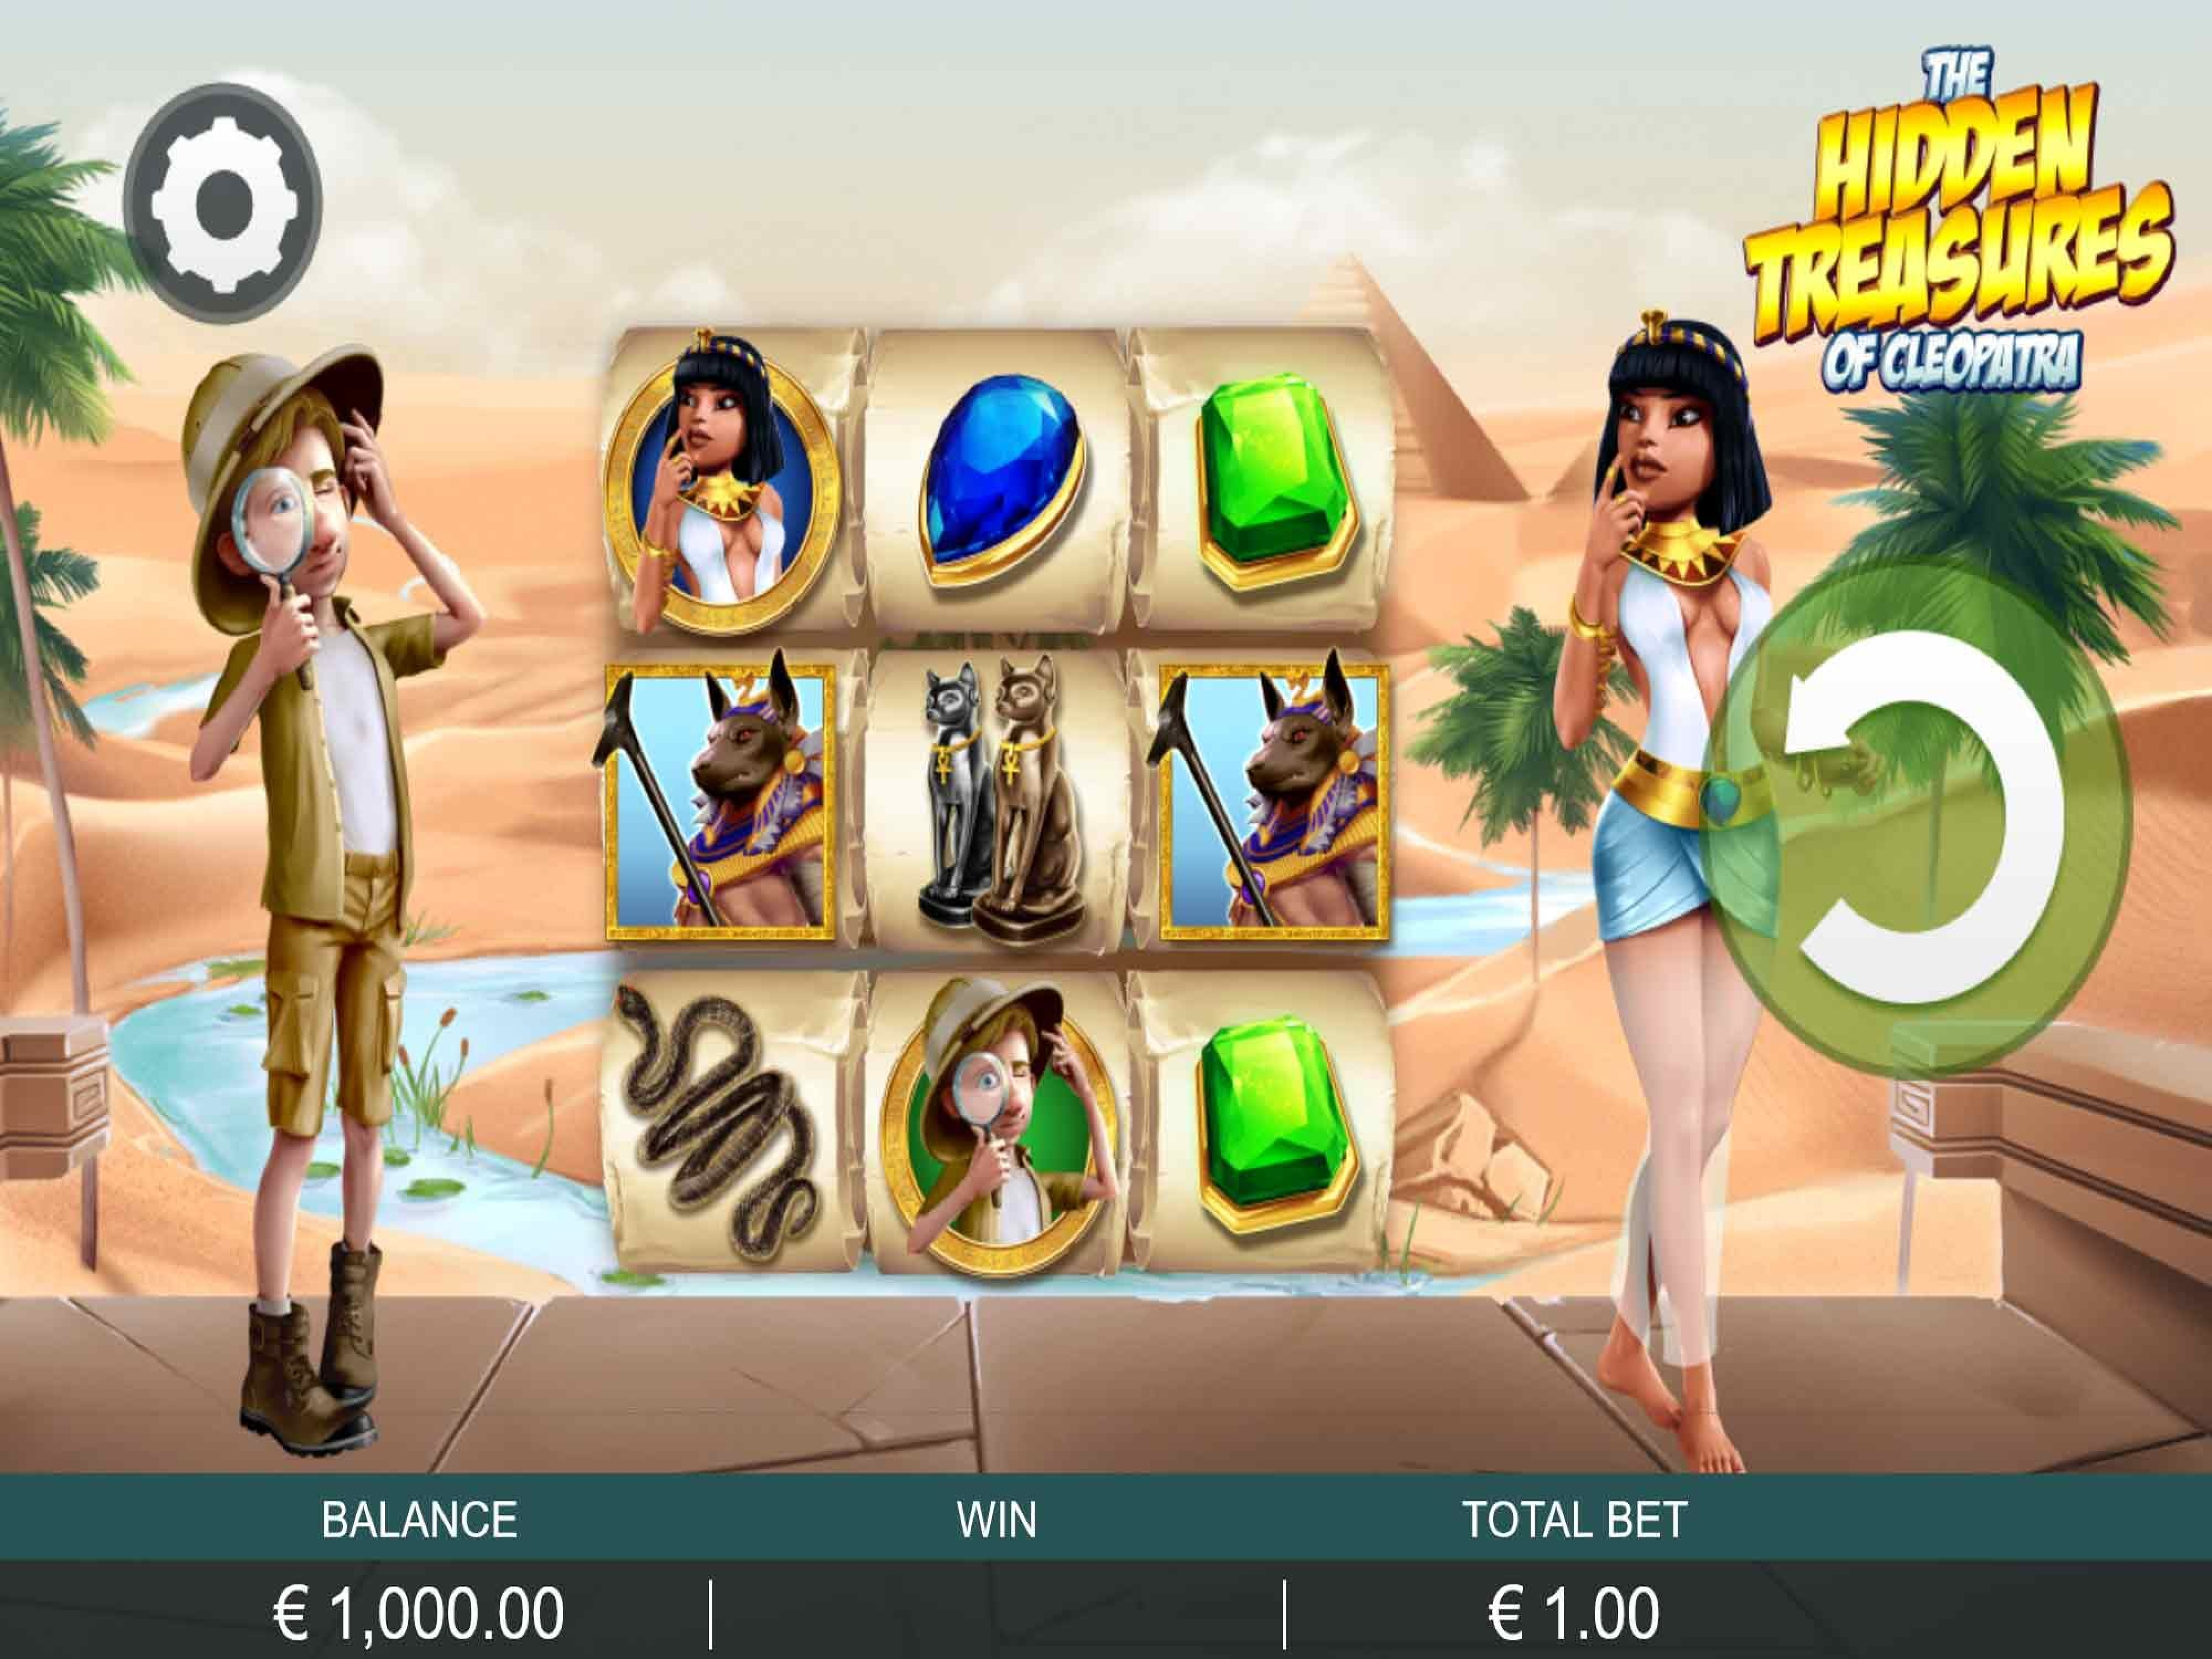 The The Hidden Treasure of Cleopatra Online Slot Demo Game by Probability Jones